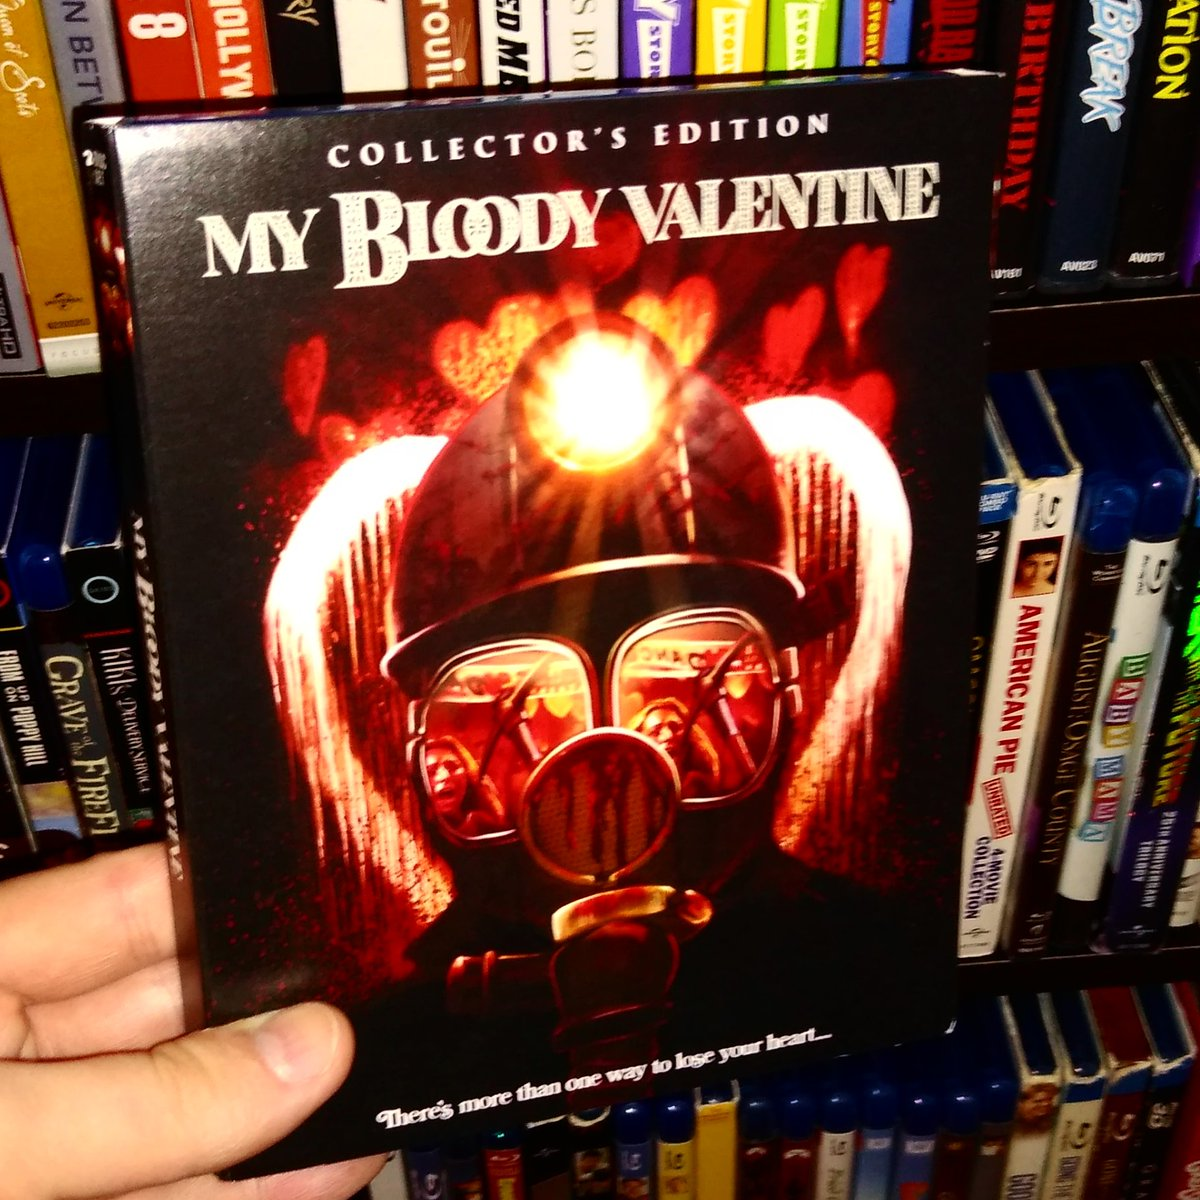 Love this release! The colors pop off the screen! The clarity is amazing! The ext scenes are seamless and cleaned up. One of the best releases from SF!! #MyBloodyValentine #Bluray #NewRelease #cinephile #moviebuff #horror #horrormovie #horrorfanatic #slasher #gorepic.twitter.com/amrF4eqUy5